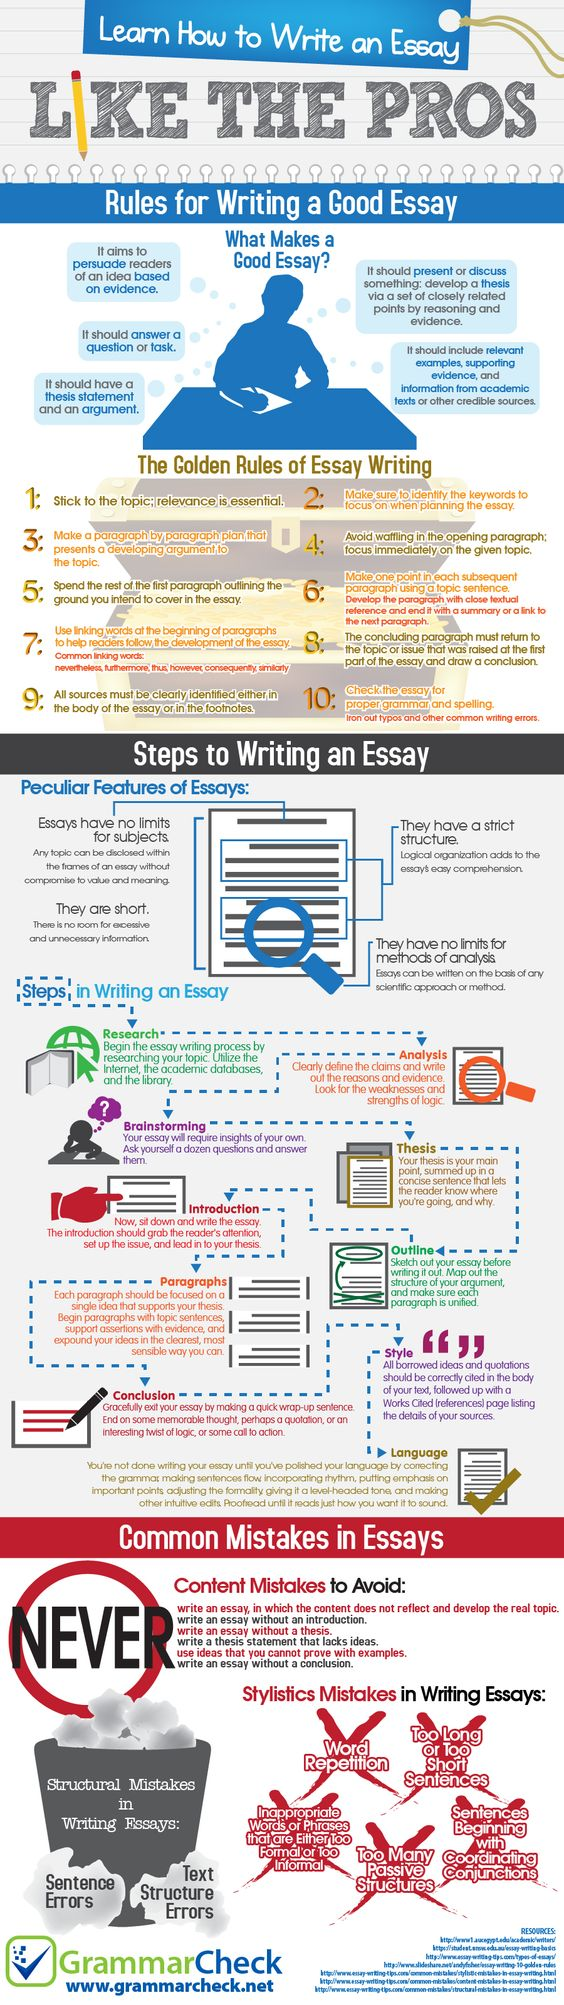 What helps you concentrate while writing an essay